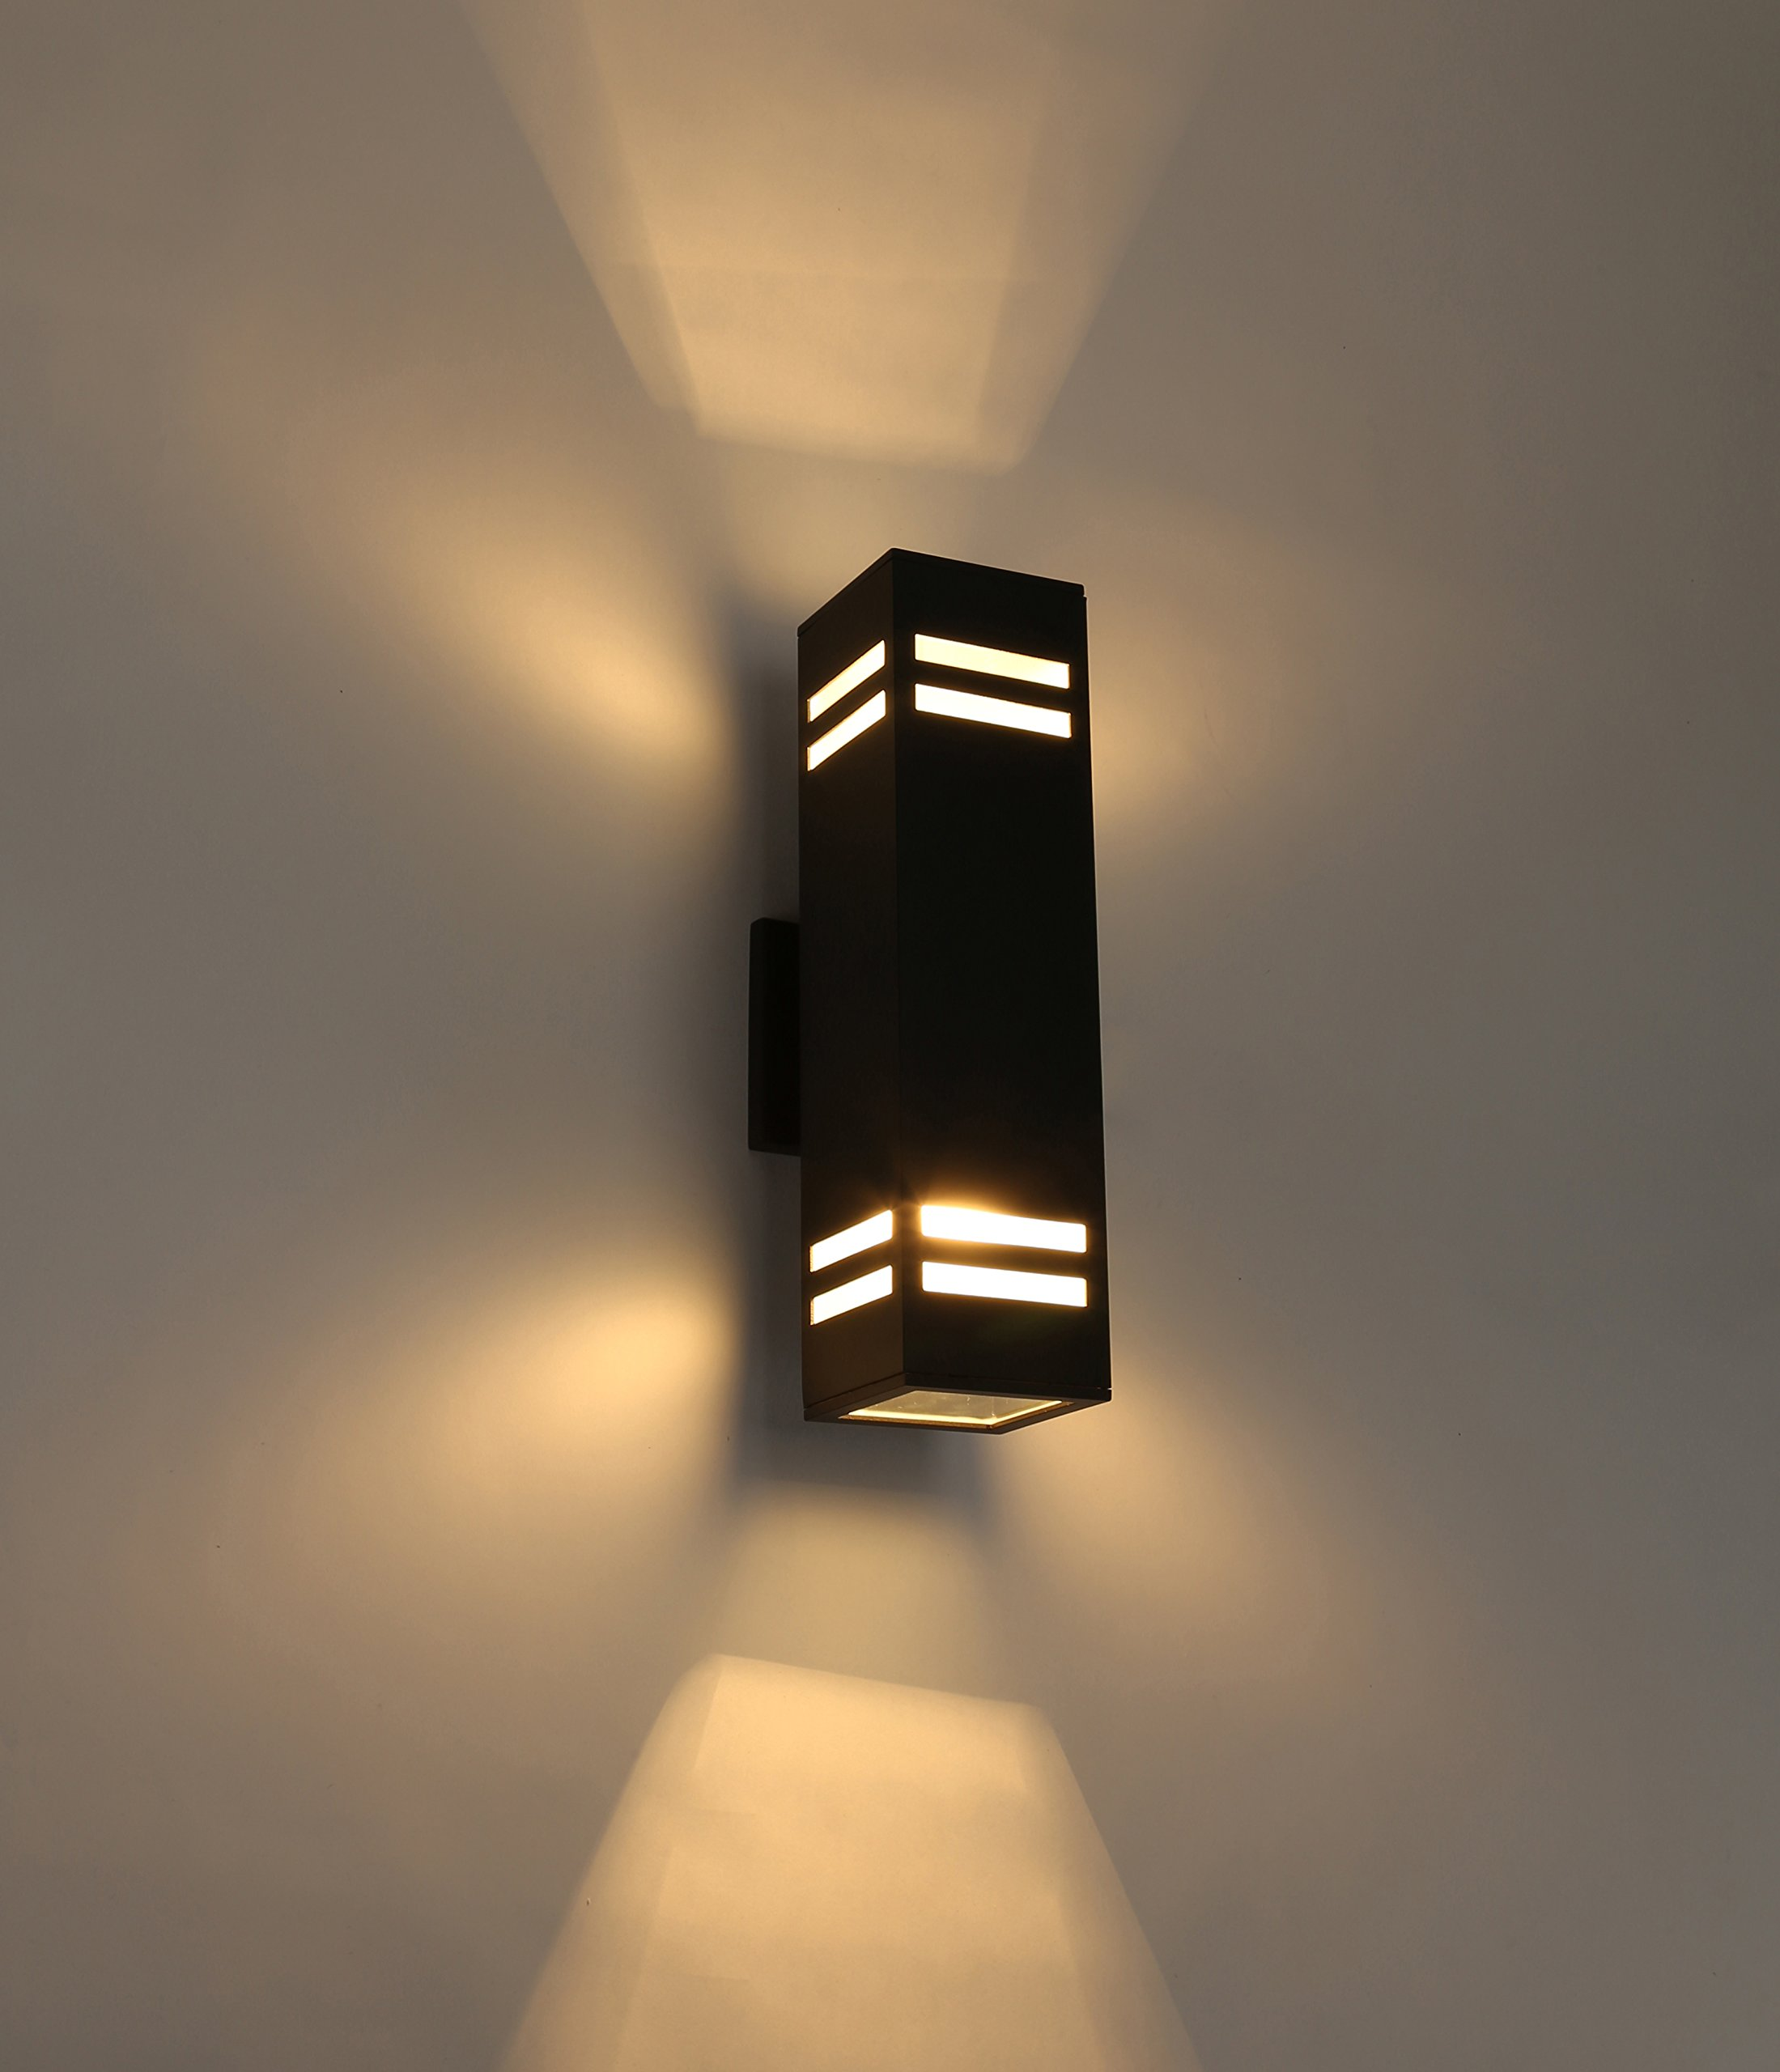 Cerdeco 67351TZ Brandon 2-Light Outdoor Wall Lamp, Sand Textured Black with 3-Sided Frosted Glasses [UL Listed]